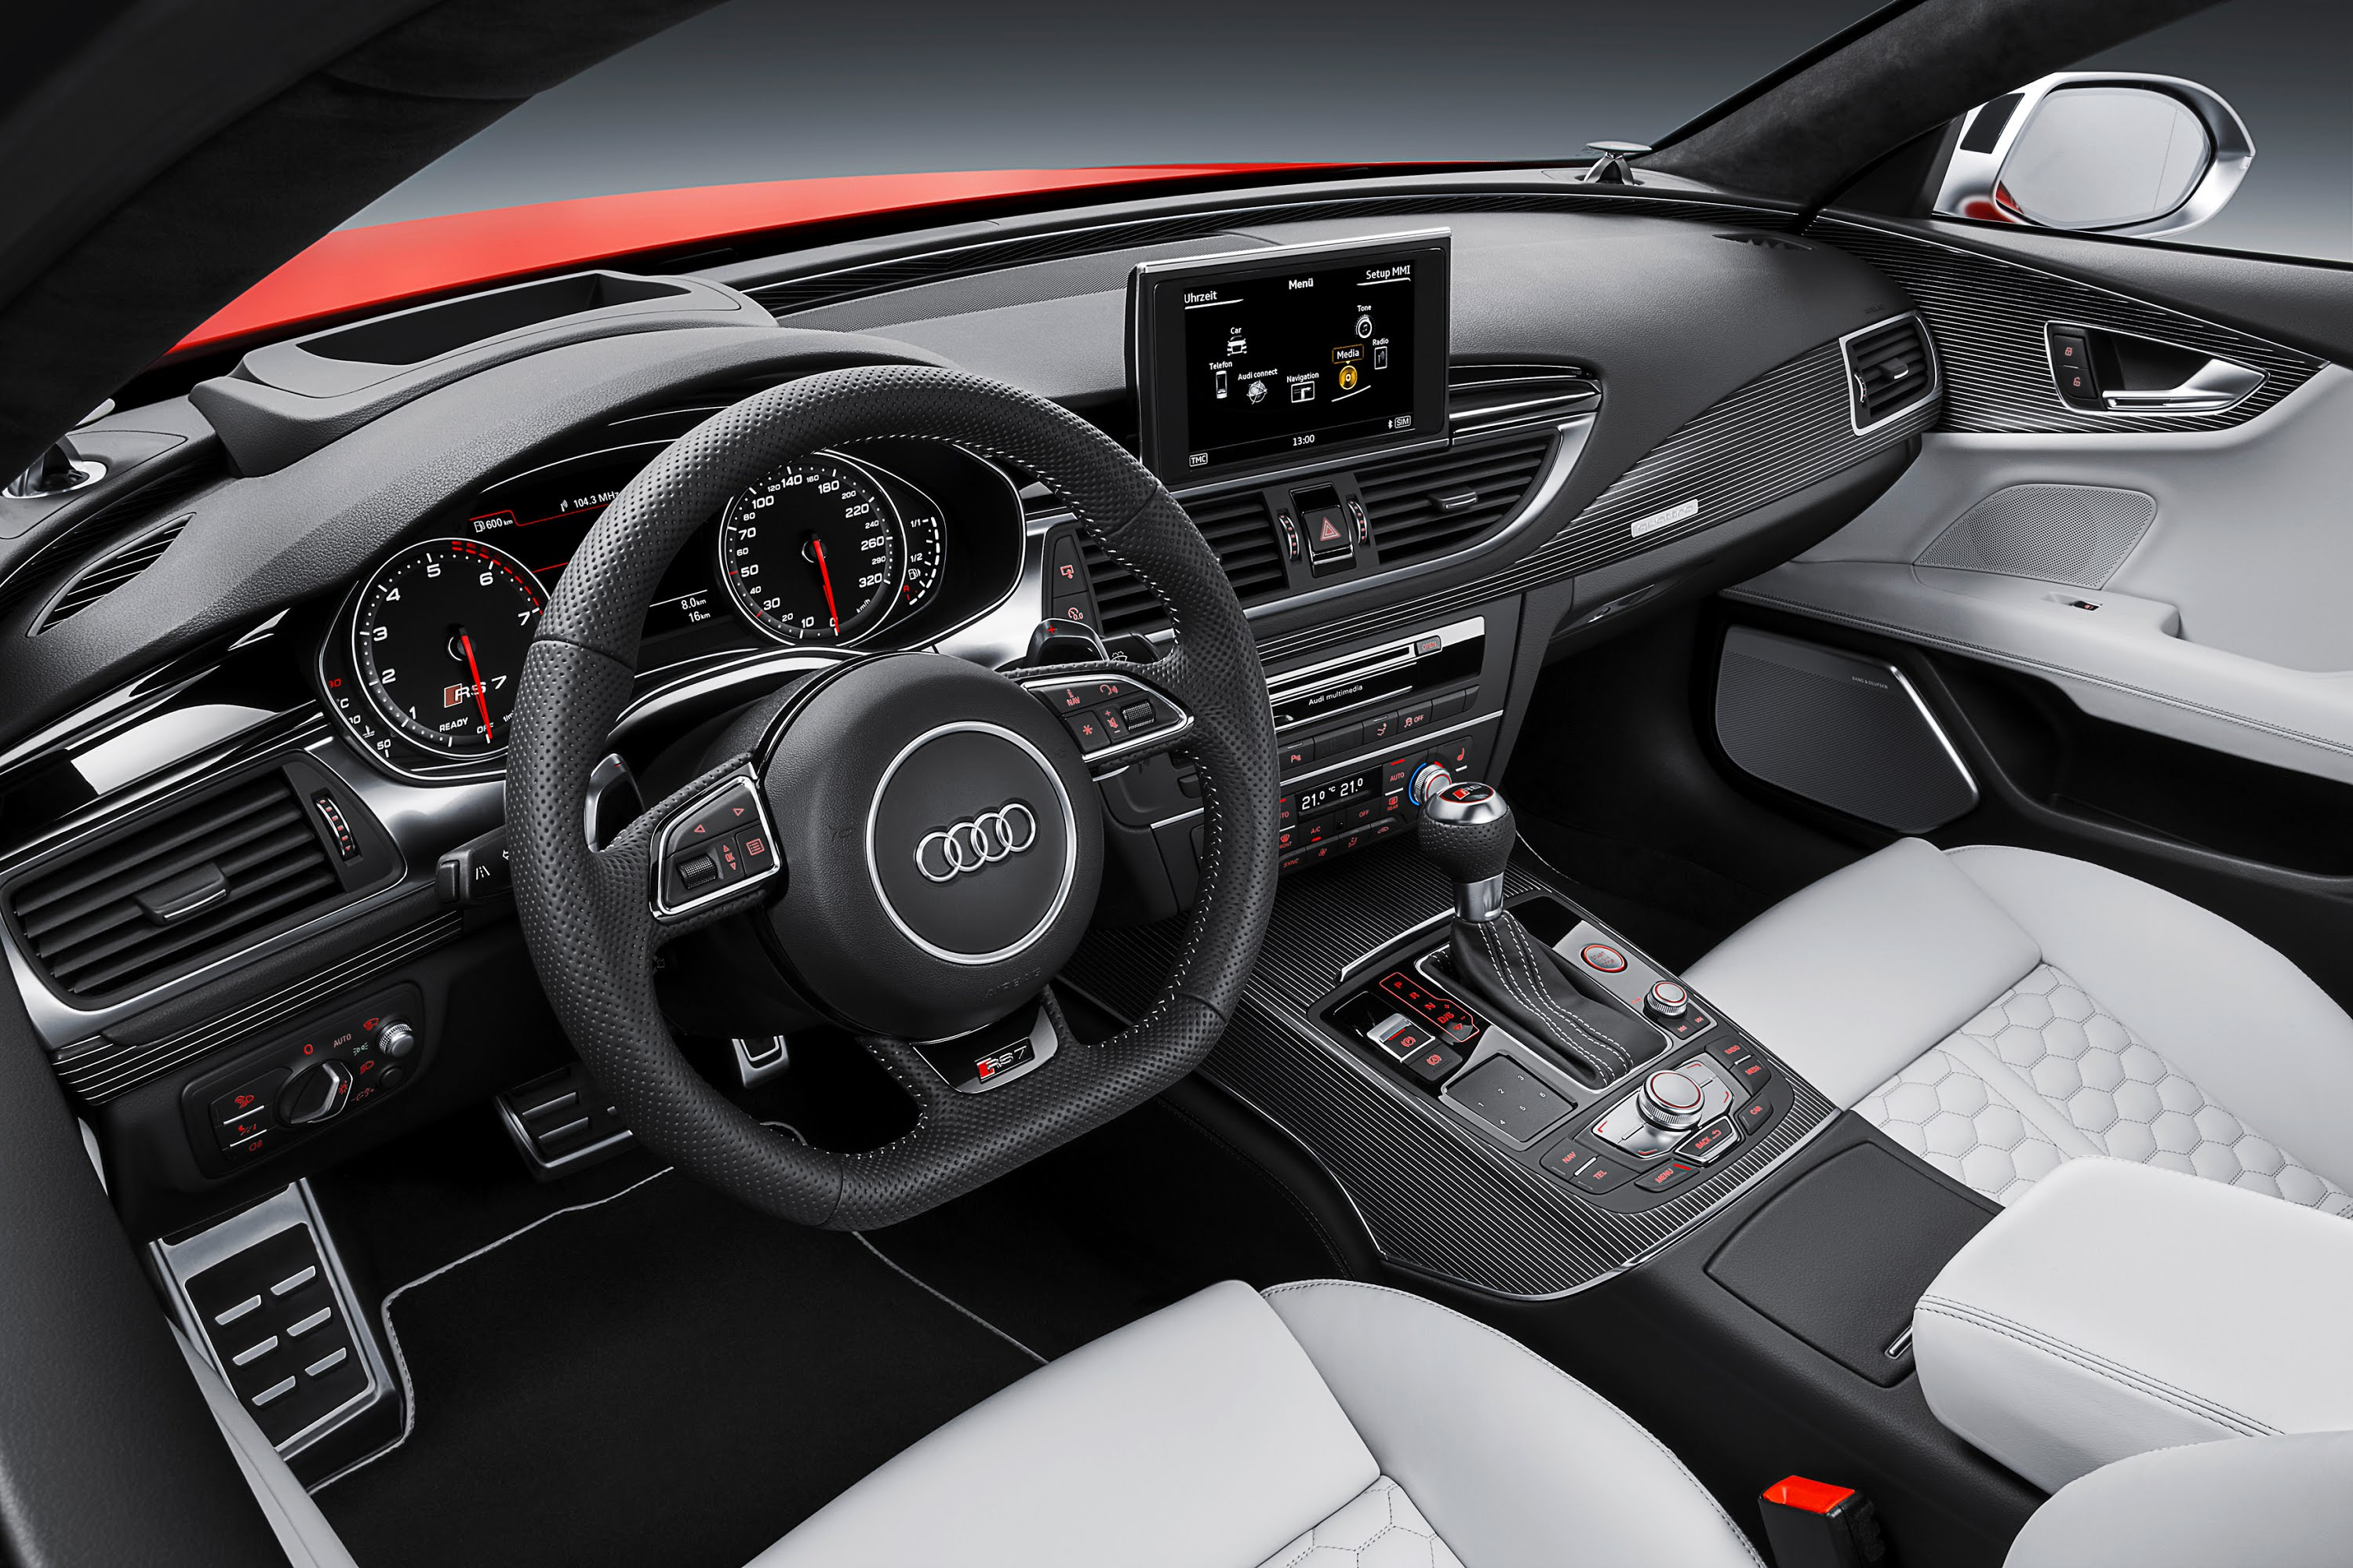 2015 Audi RS 7 Information and photos ZombieDrive